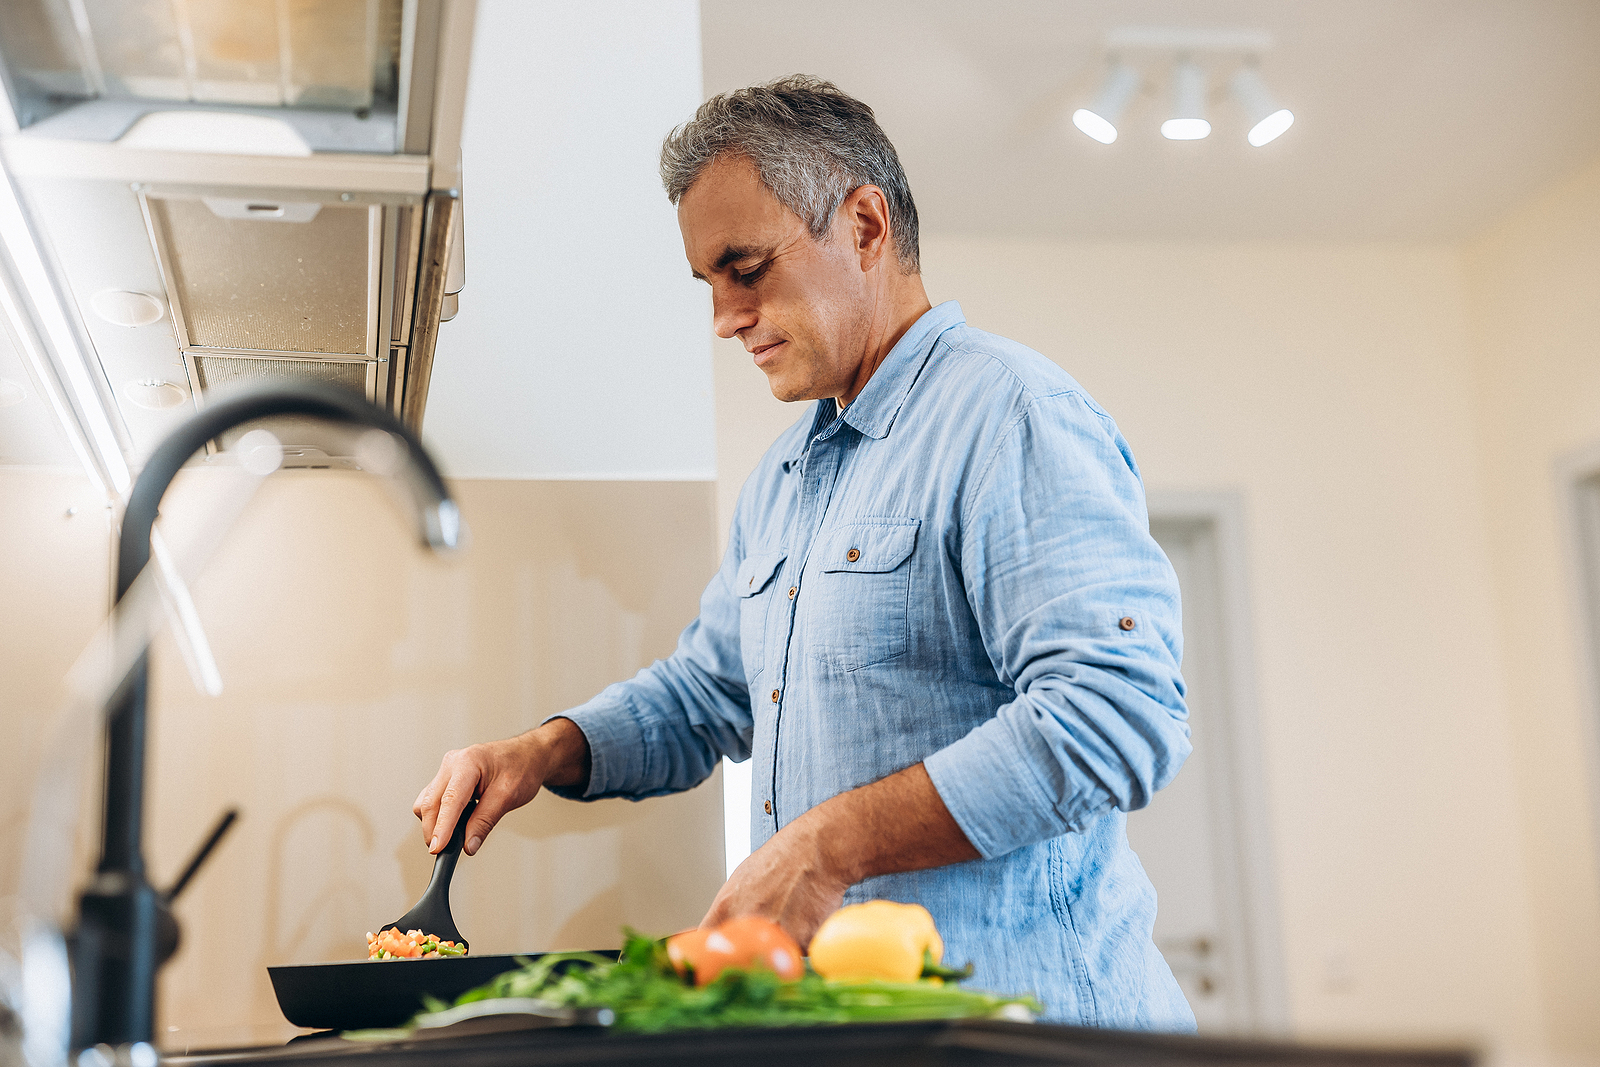 An image depicting a man cooking soyfoods. Research shows soy protein does not negatively effect testosterone levels.